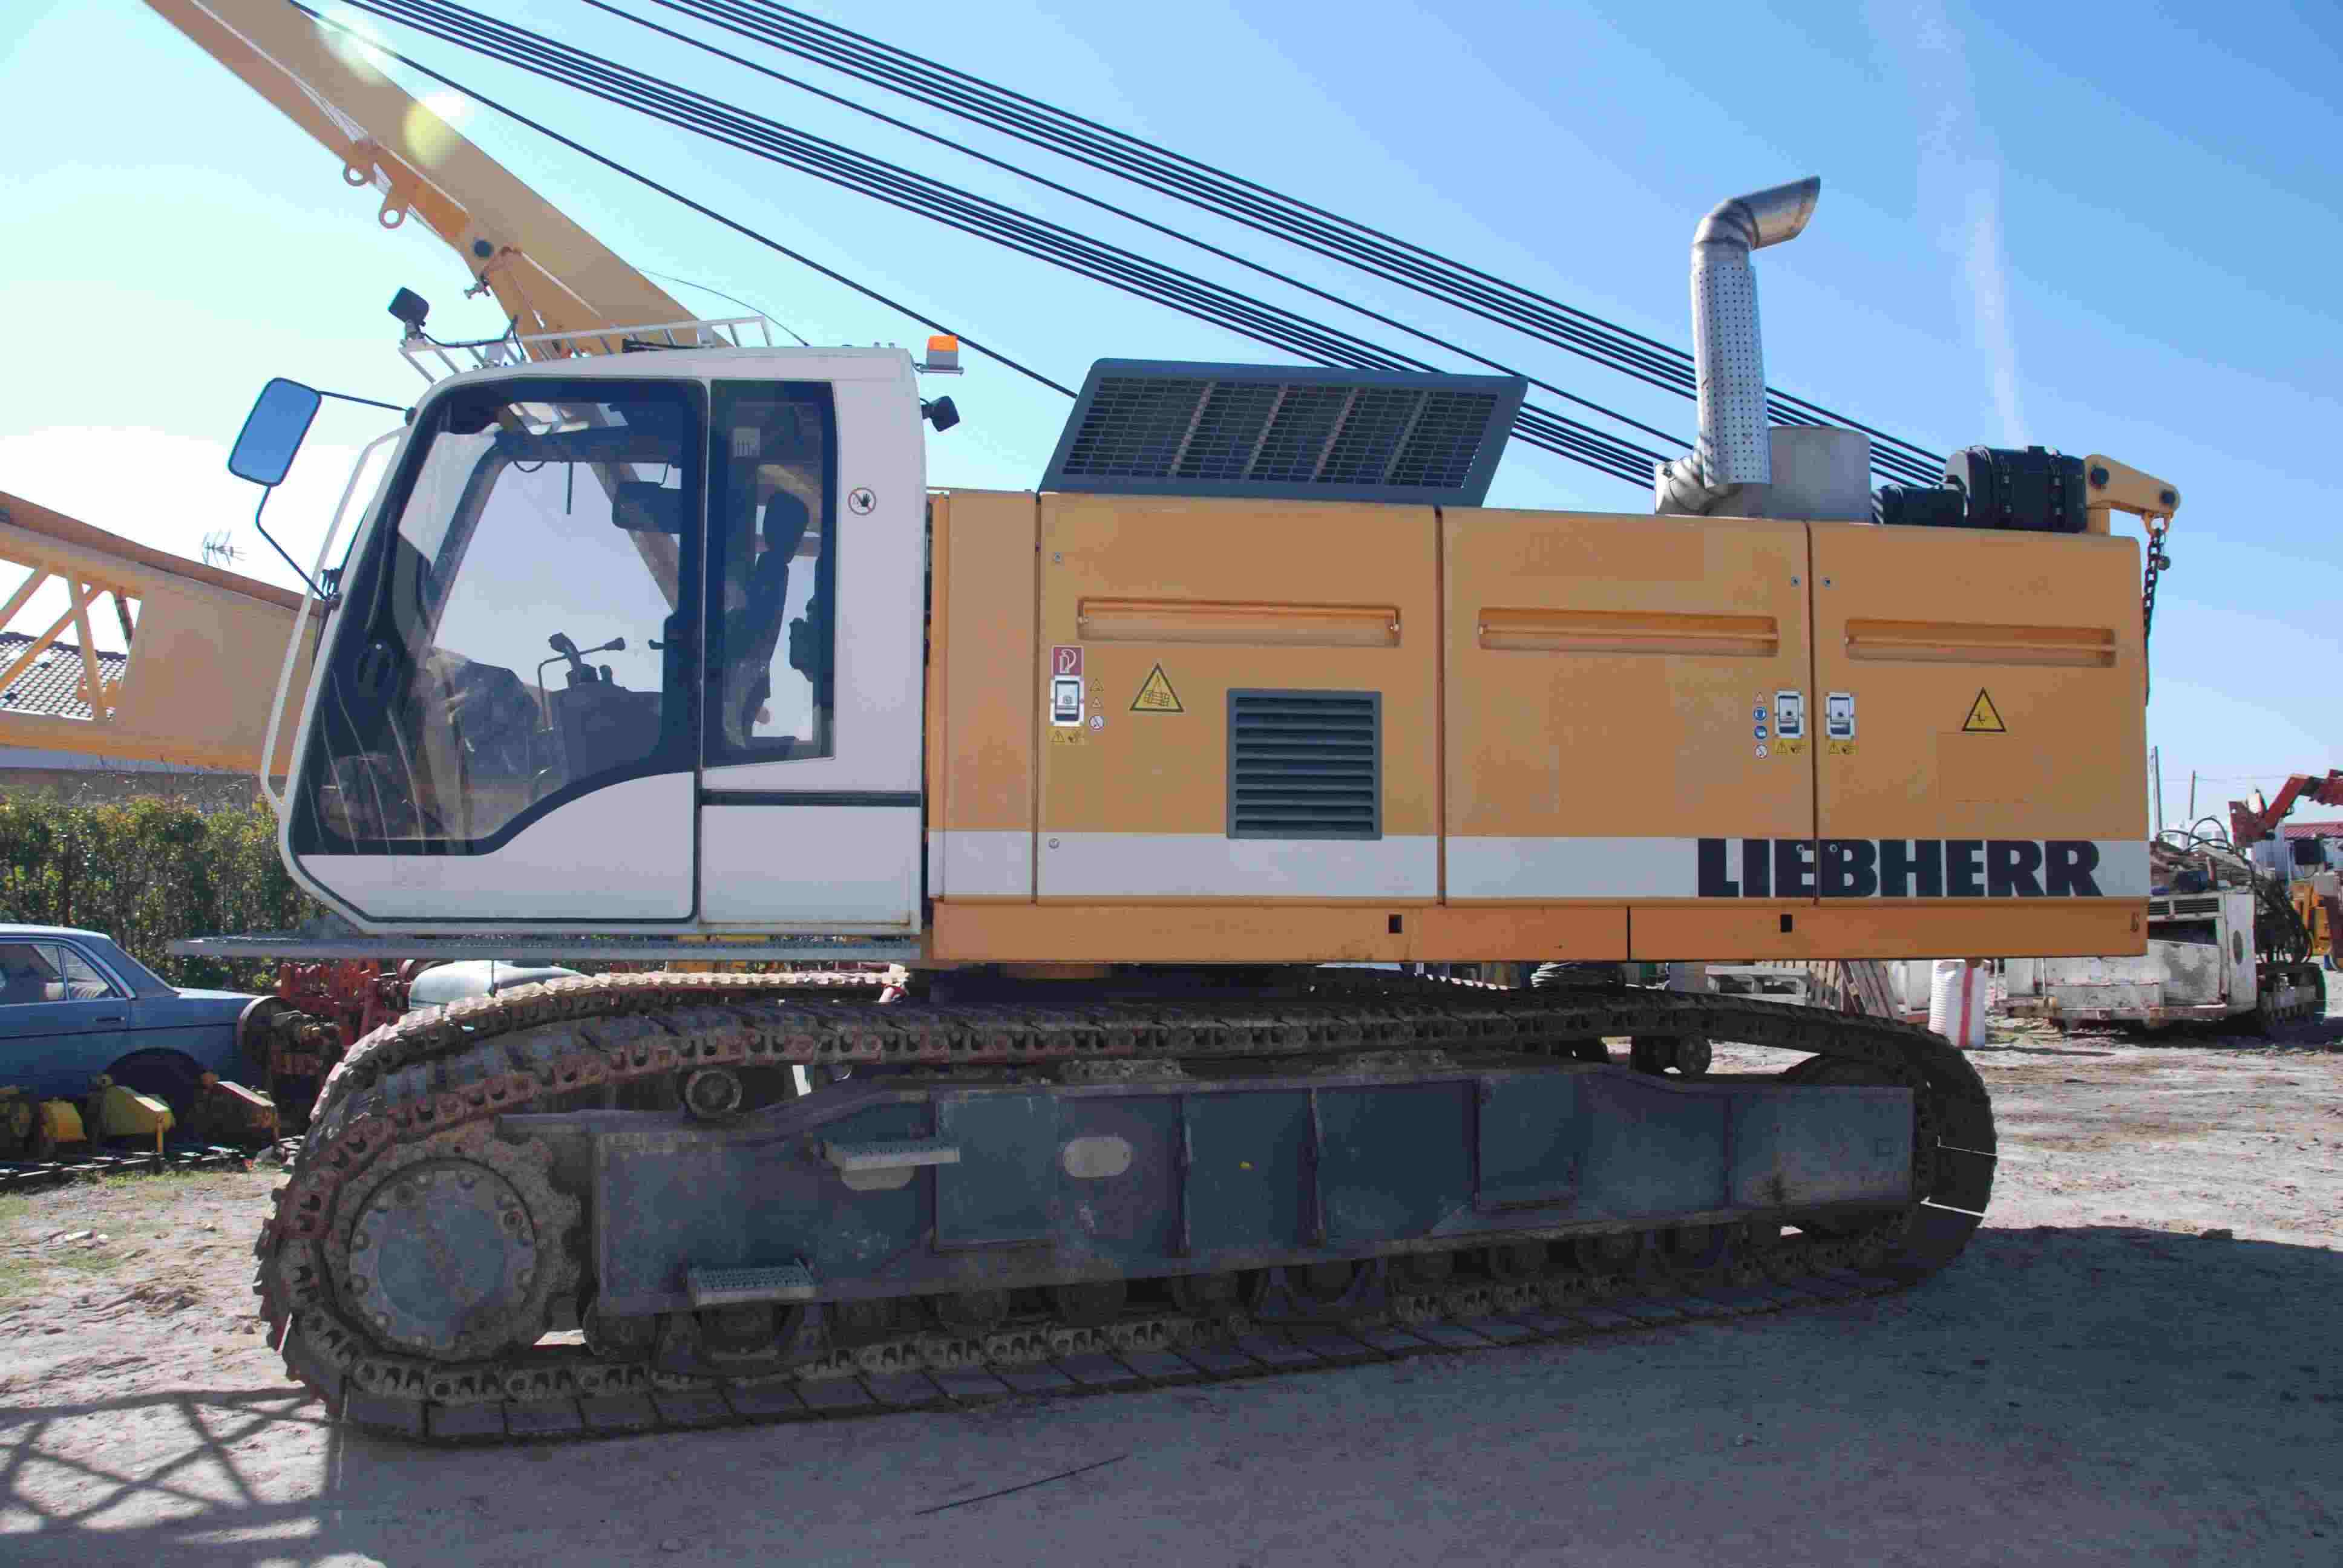 Used Liebherr HS855HD (2006) for rent and sale. used crawler rope excavators with high line pull for rent or sale